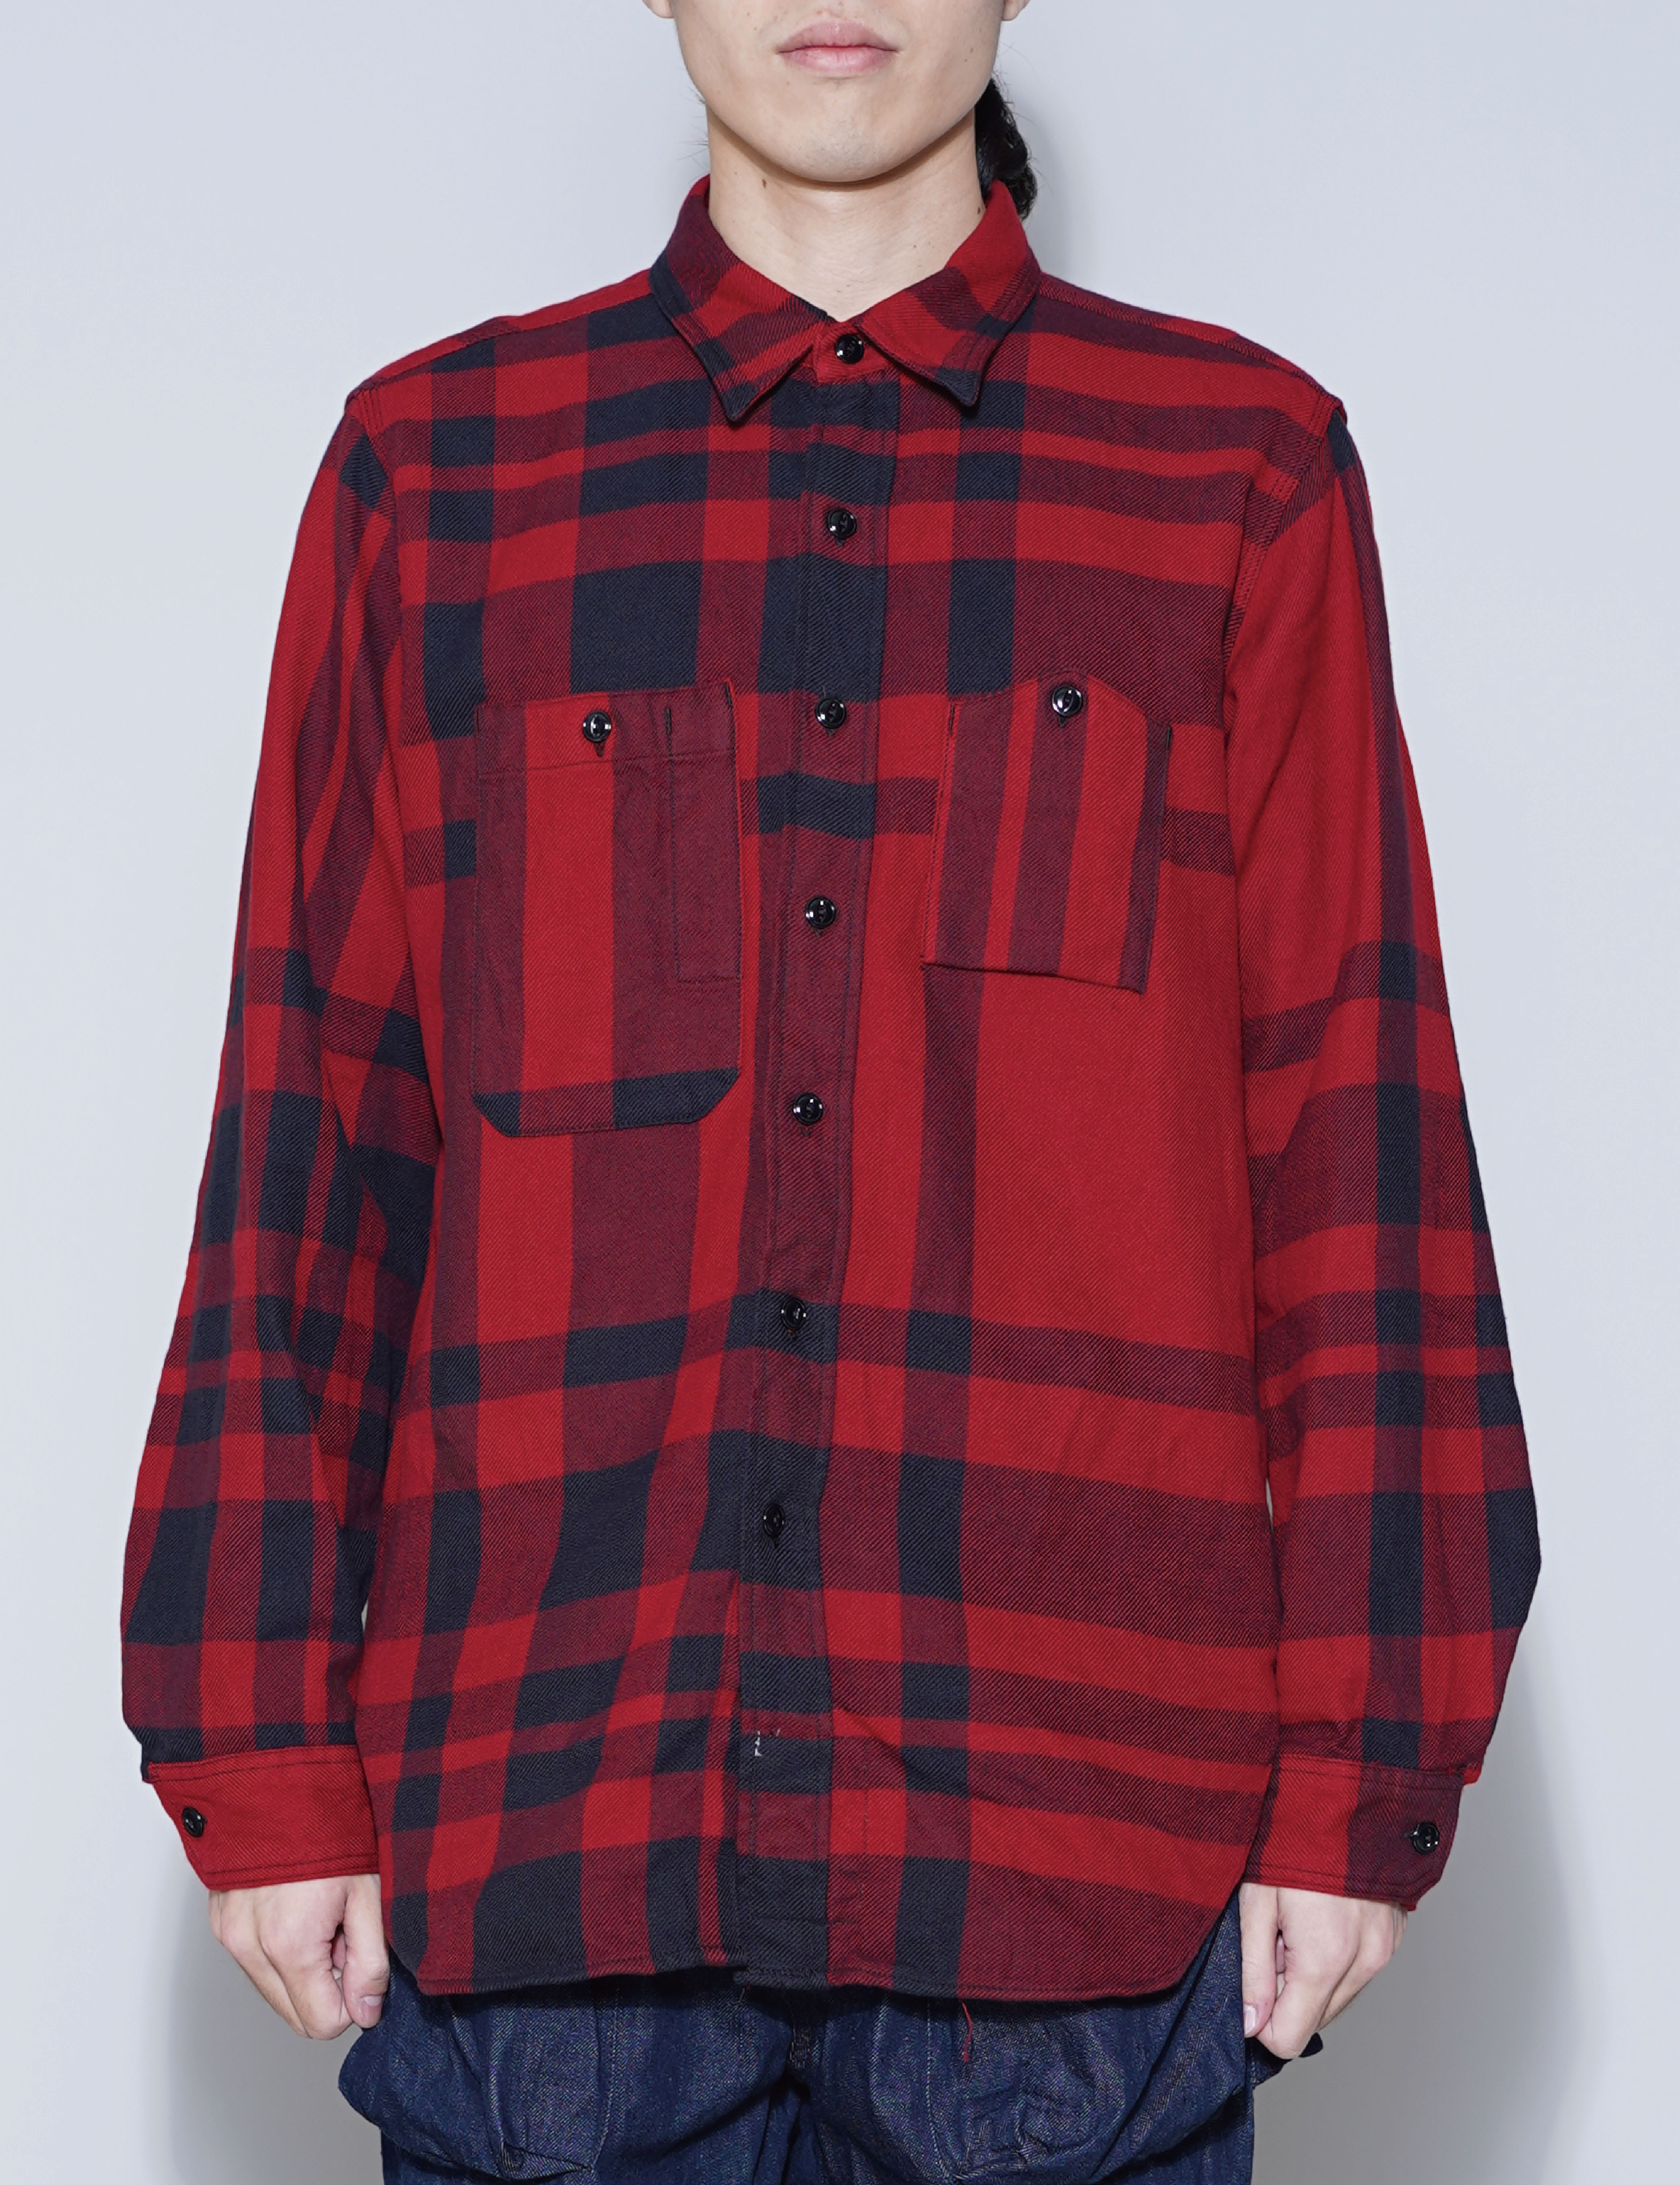 WORK SHIRT (RED/BLACK)